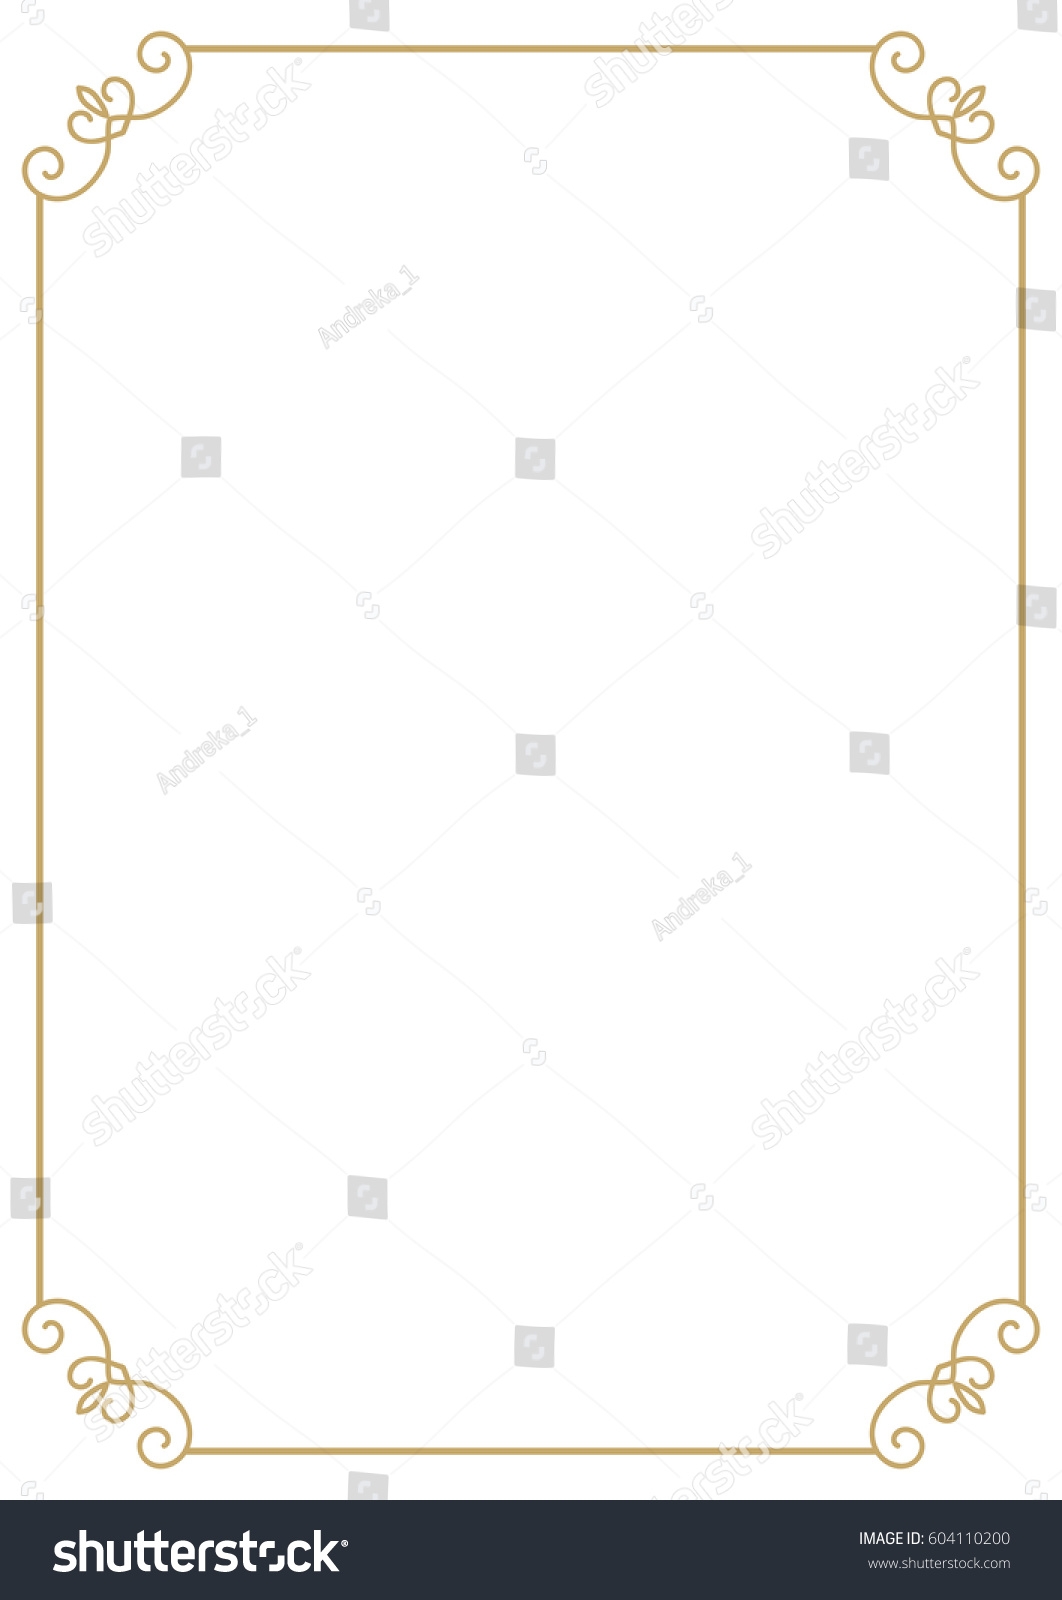 Royalty free vintage premium a4 size frame border 604110200 vintage premium a4 size frame border divider for your design menu website certificate and other xflitez Gallery